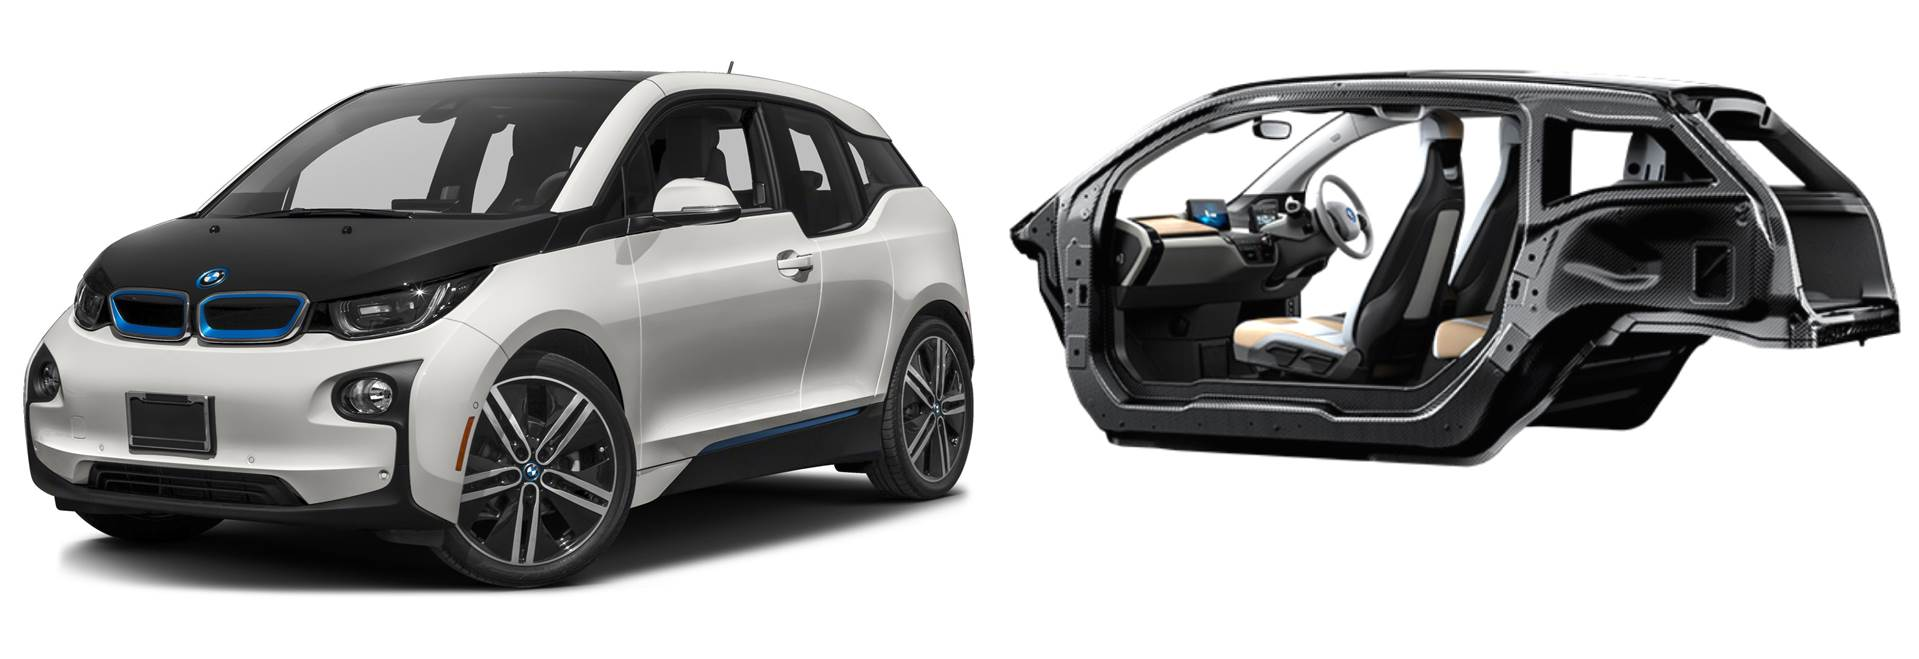 4-BMW i3 Series body.jpg